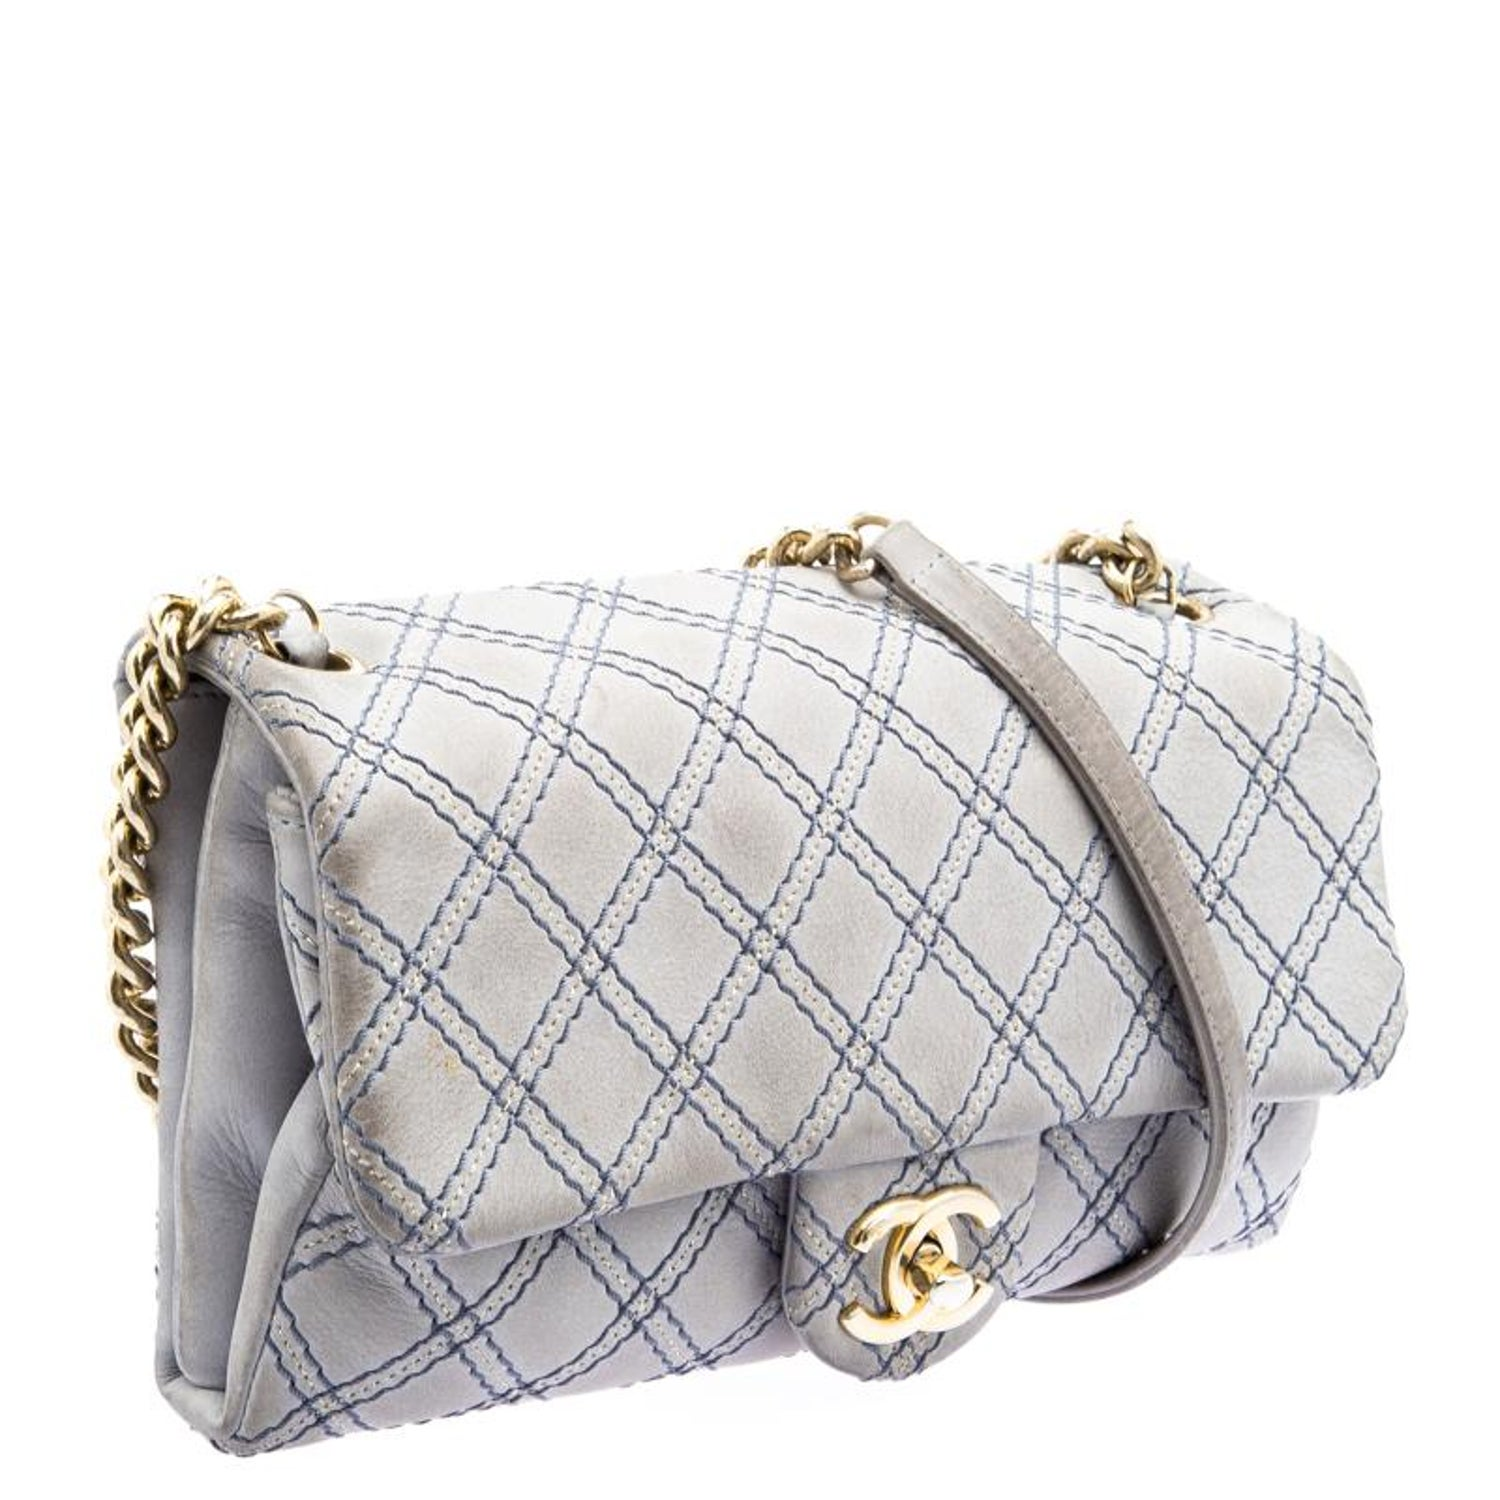 Chanel Grey Metallic Stitch Leather Small Classic Flap Bag For Sale at  1stdibs 63f31a281fe5f